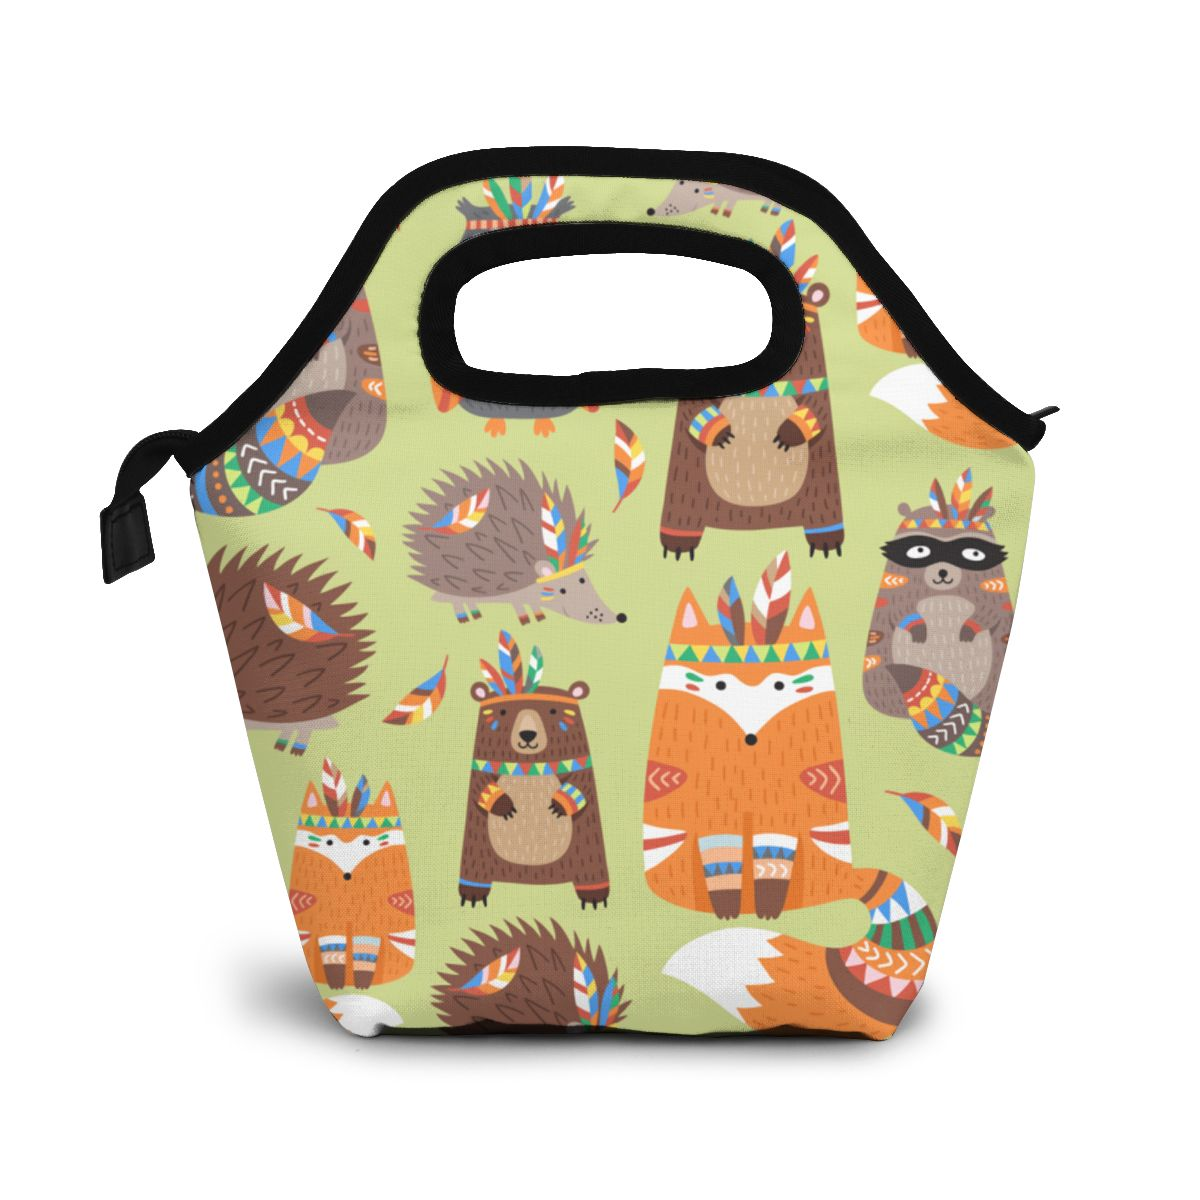 Indians Animal Lunch Bag Lunch/ice Bags Portable Insulated Picnic Food Box for Women Men image